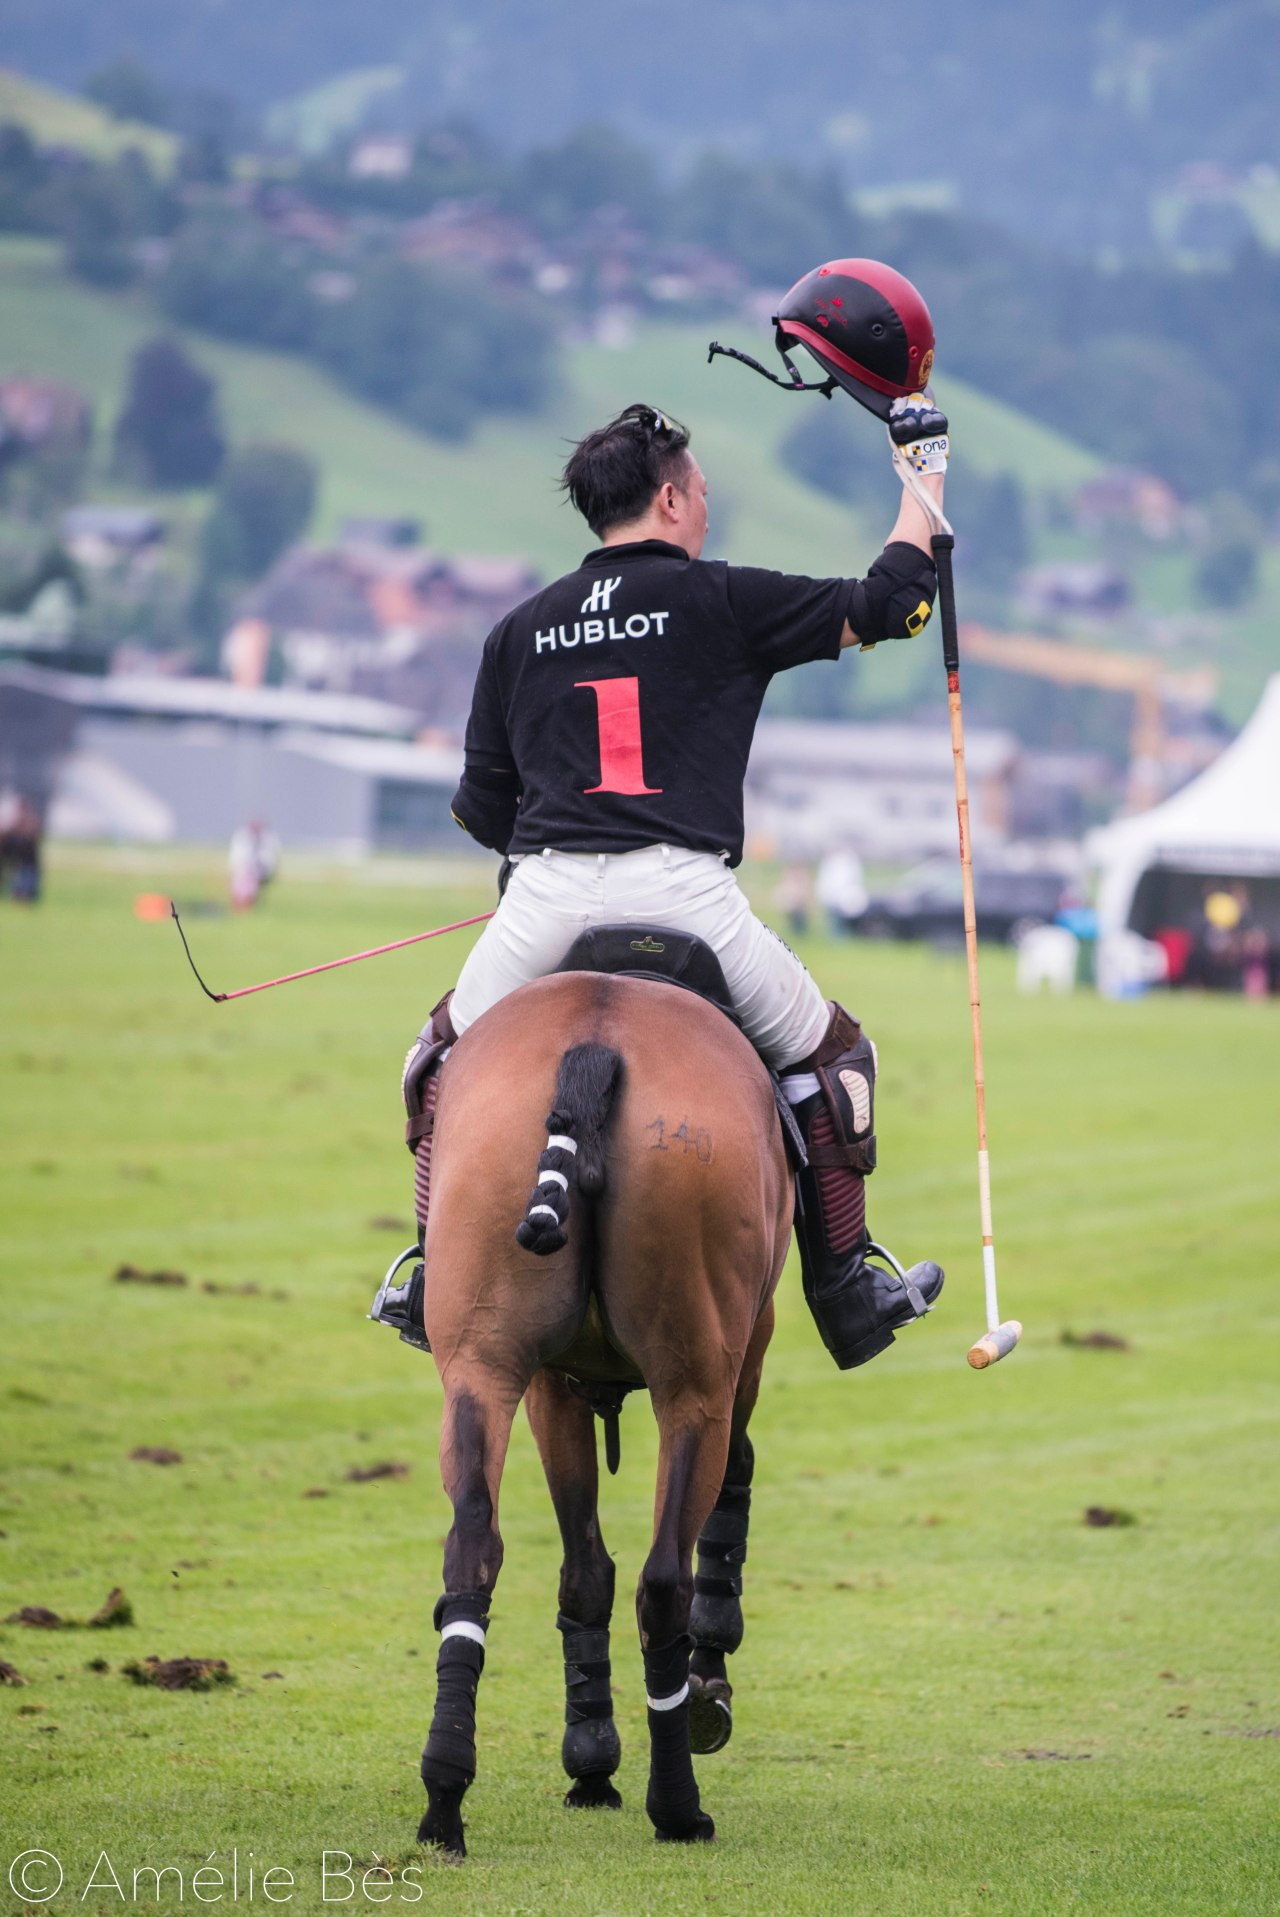 captain-of-the-hublot-polo-team-mr-shilai-liu